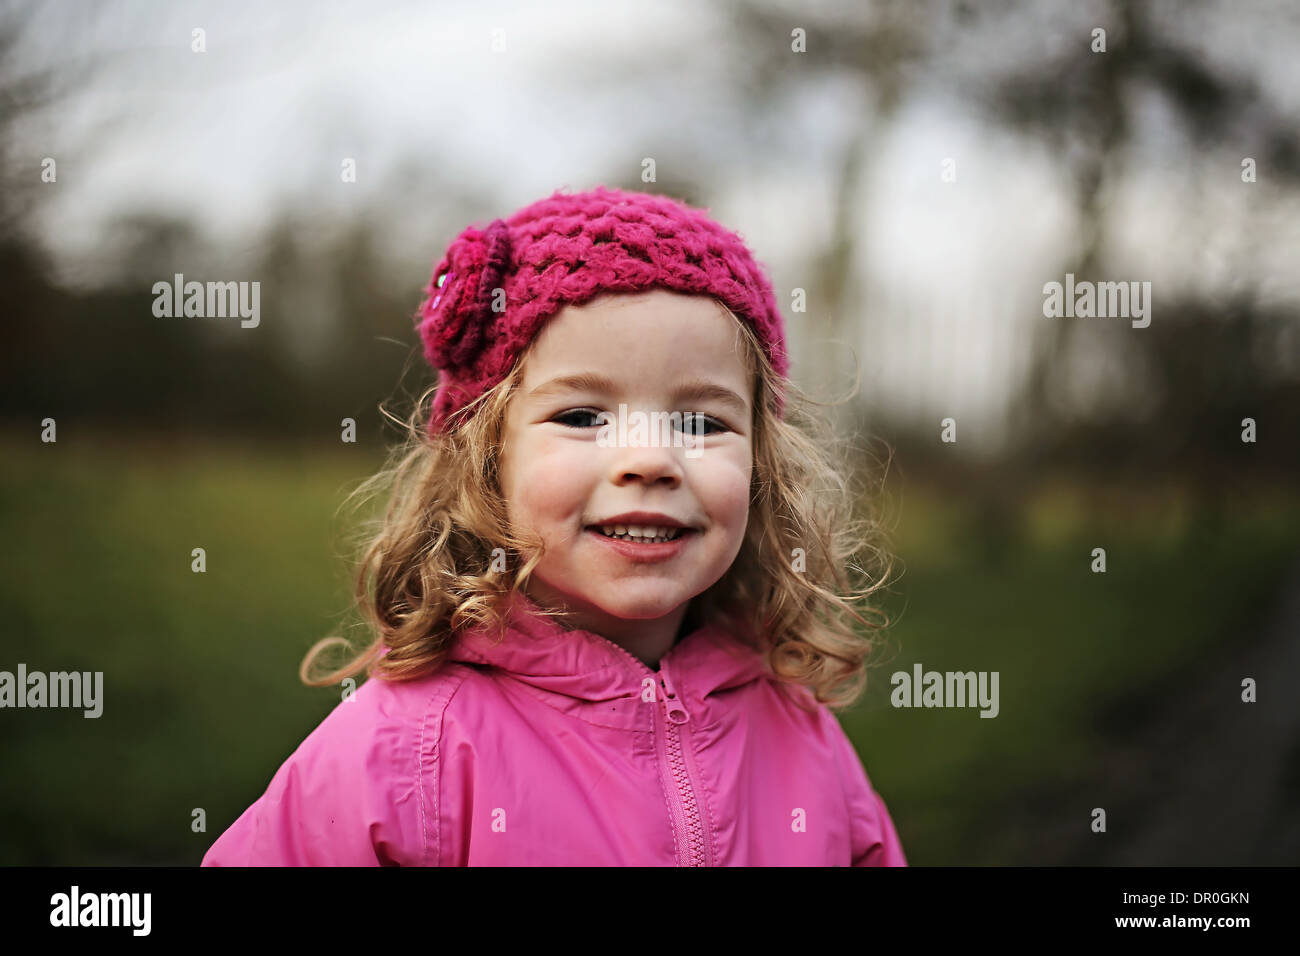 Little girl wearing pink smiling at camera - Stock Image